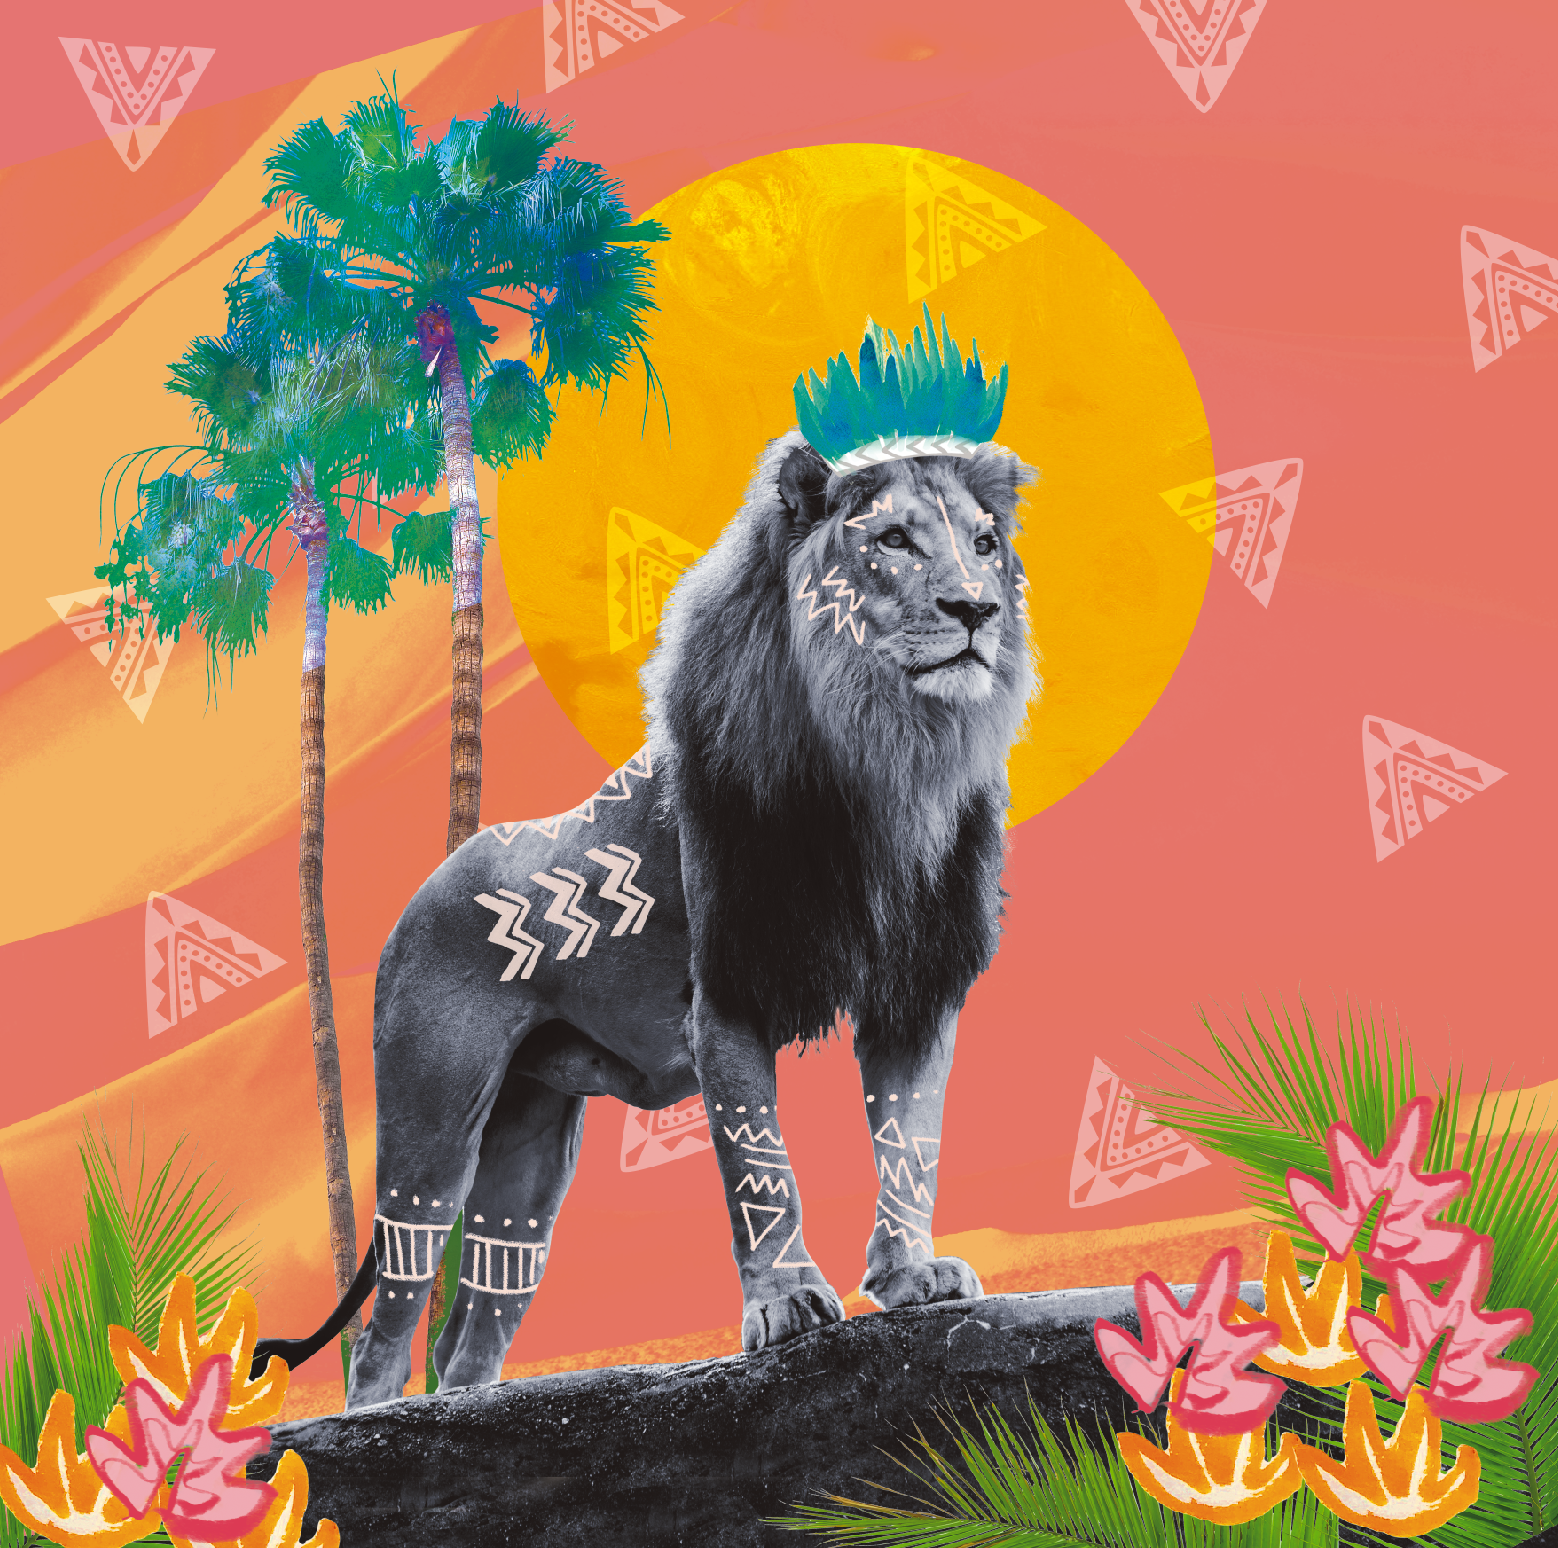 STAND TALL SIMBA    With their deliberate movements and majestic stature, lions seem to emanate confident energy. In reality, they're pretty lazy and leave most of the hunting to lionesses… but we can still admire and give the King of the Jungle the saintly aura it projects.